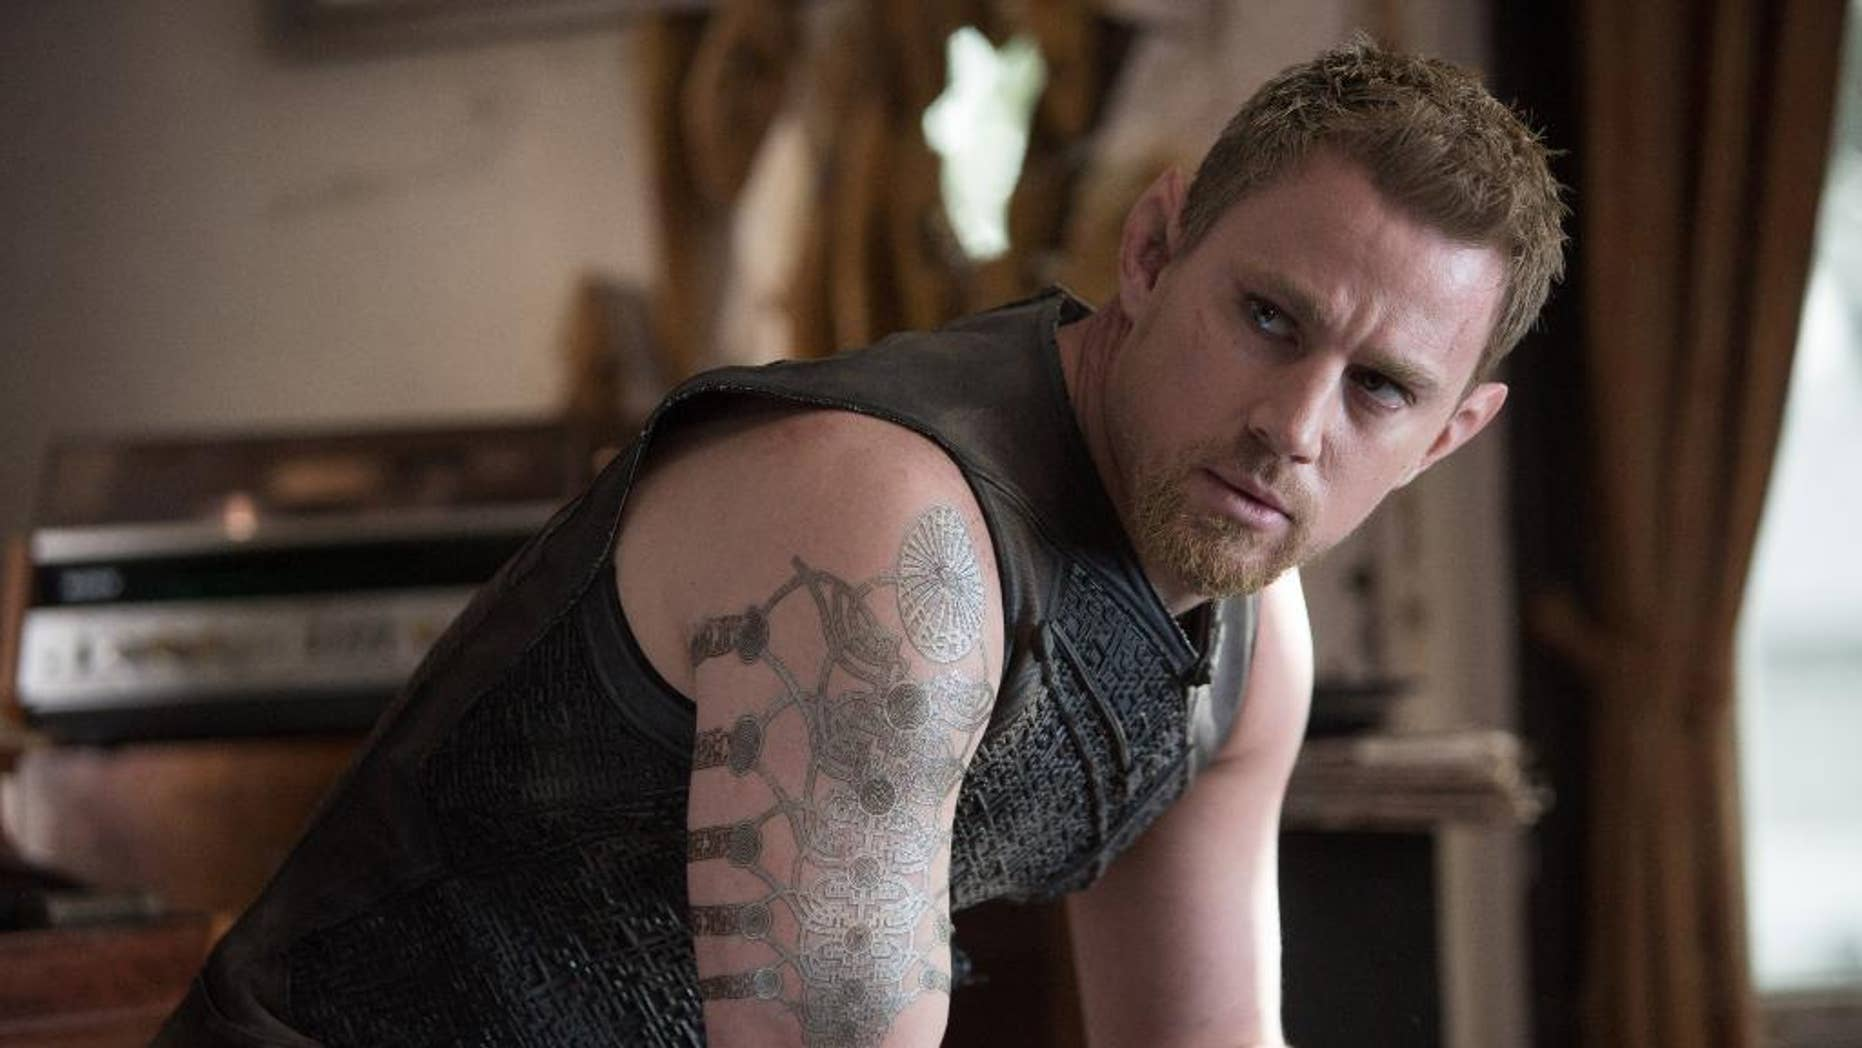 """This photo provided by Warner Bros. Pictures shows, Channing Tatum as Caine Wise, in Warner Bros. Pictures' and Village Roadshow Pictures' """"Jupiter Ascending,"""" an original science fiction epic adventure from Lana and Andy Wachowski. The movie is a Warner Bros. Pictures release. (AP Photo/Warner Bros. Pictures, Murray Close)"""